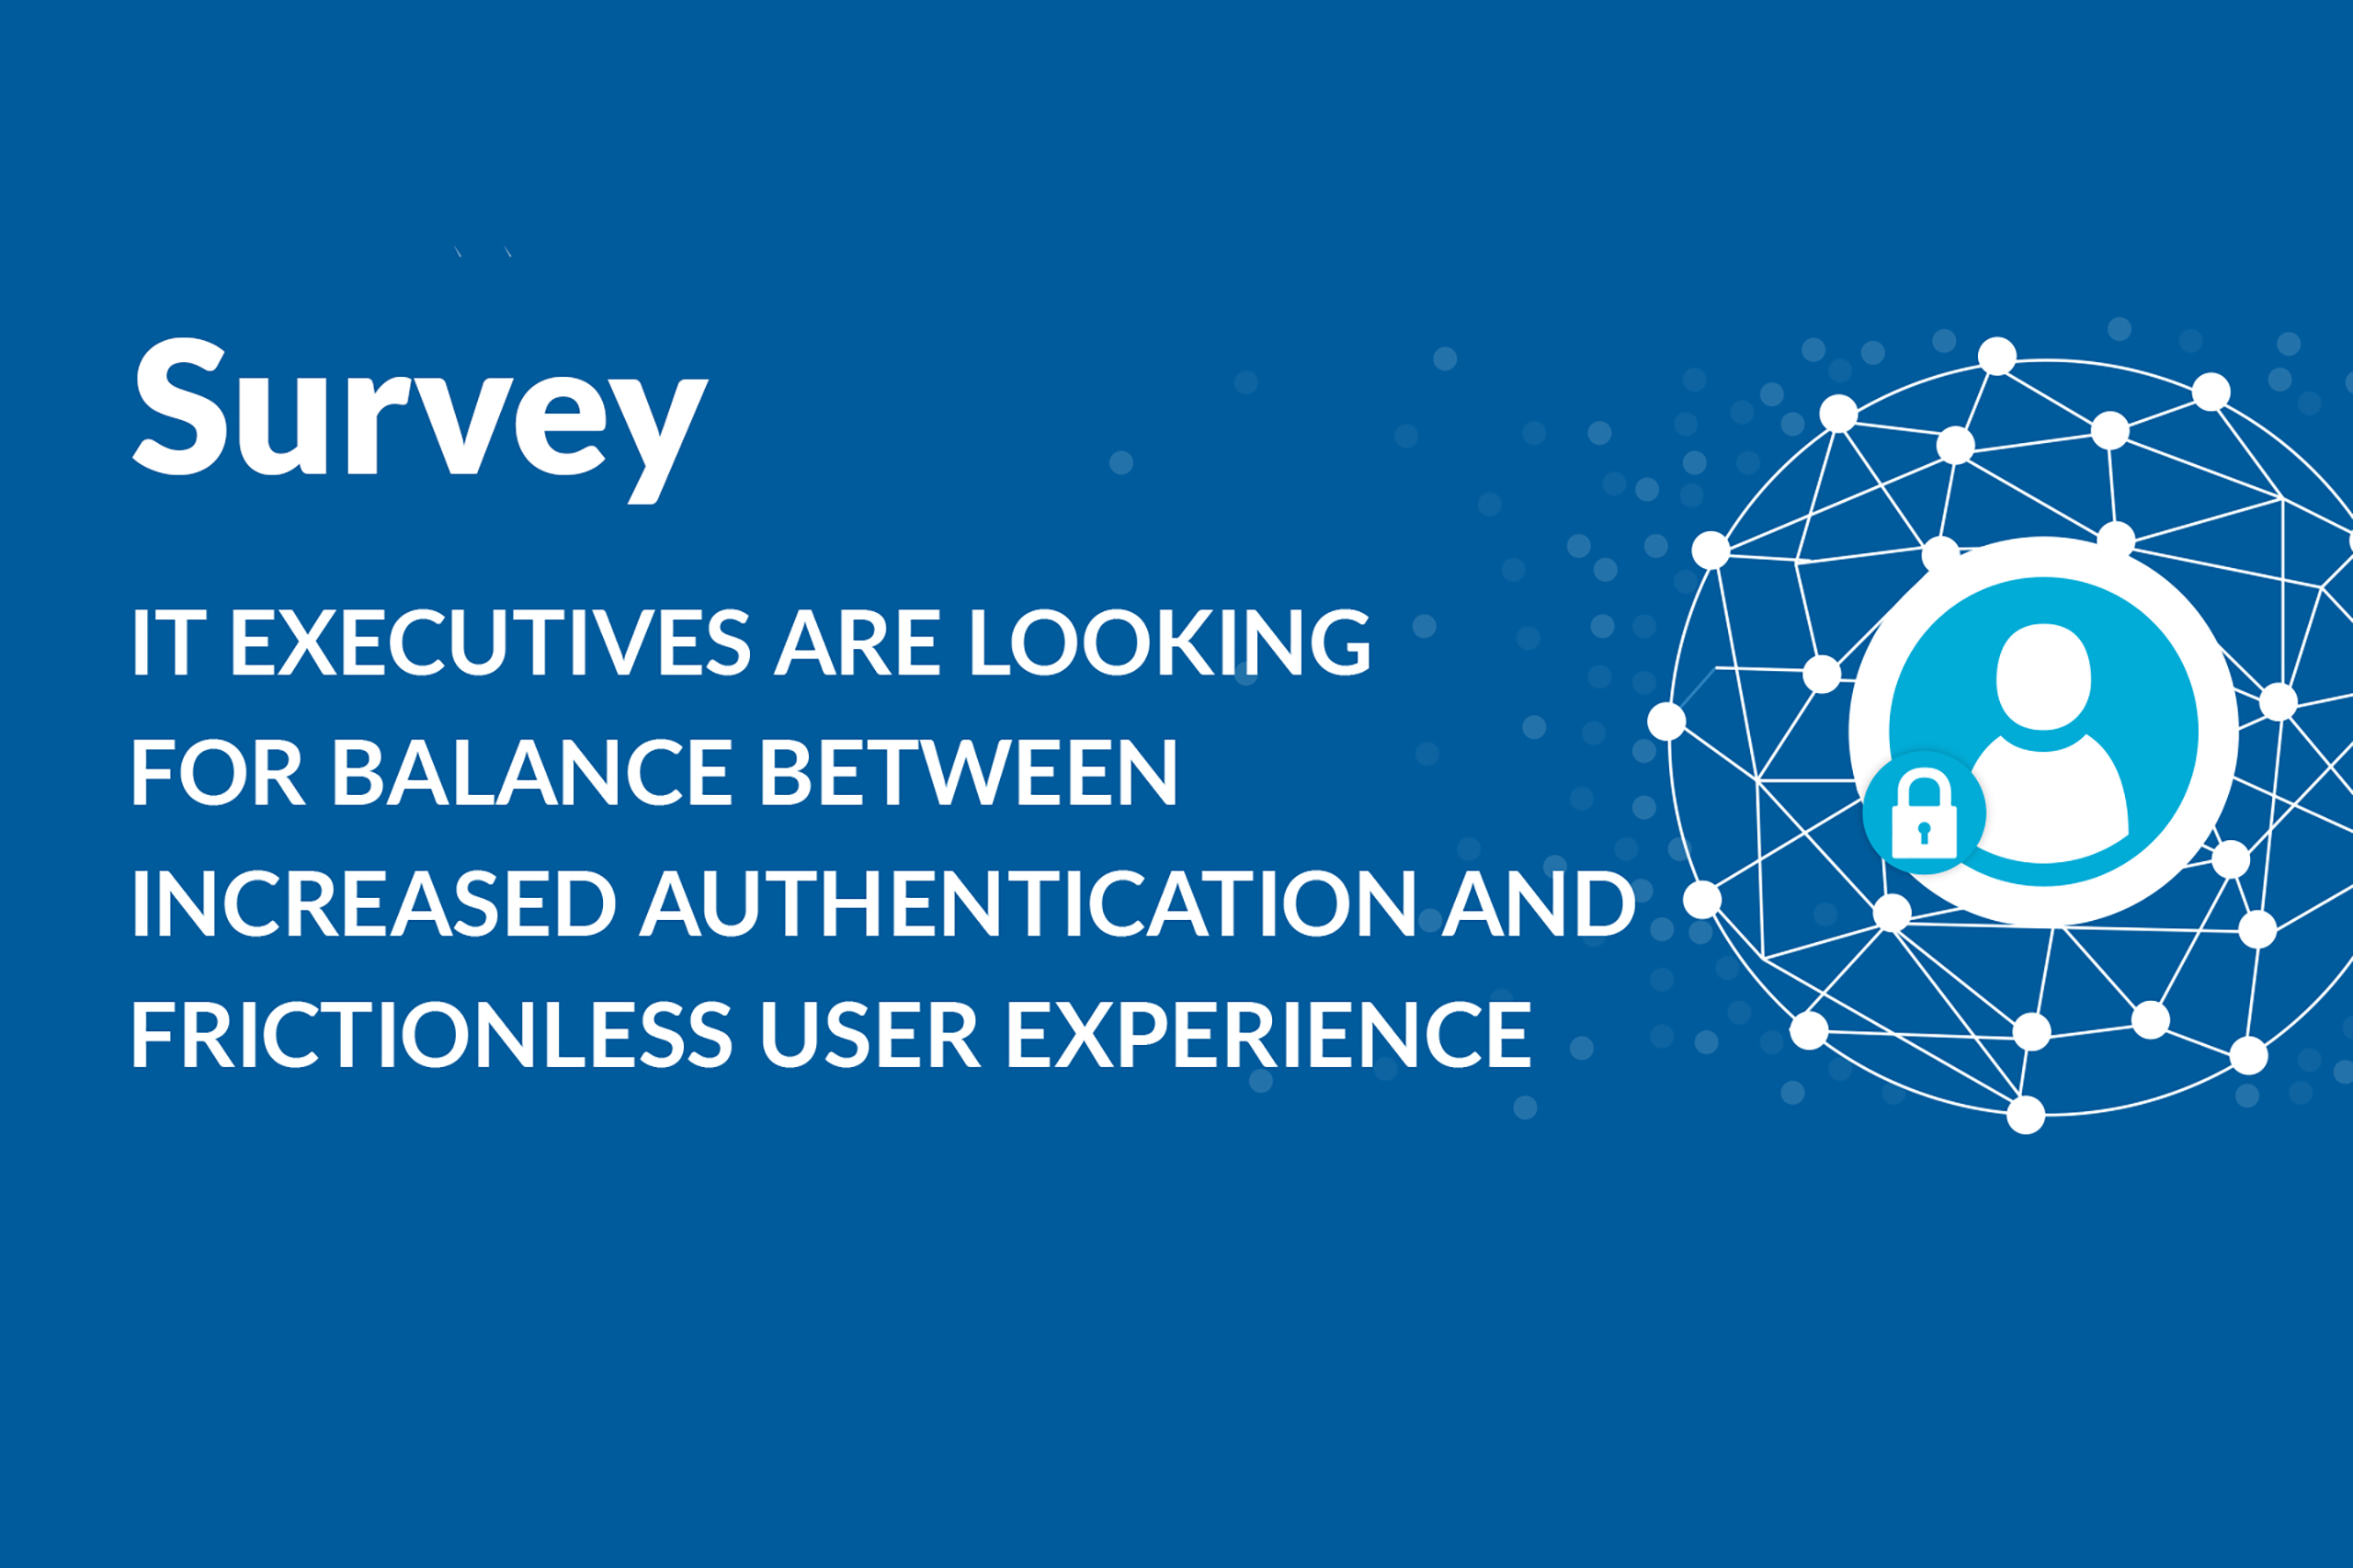 Survey IT Executives Seek Increased Authentication and Frictionless User Experience